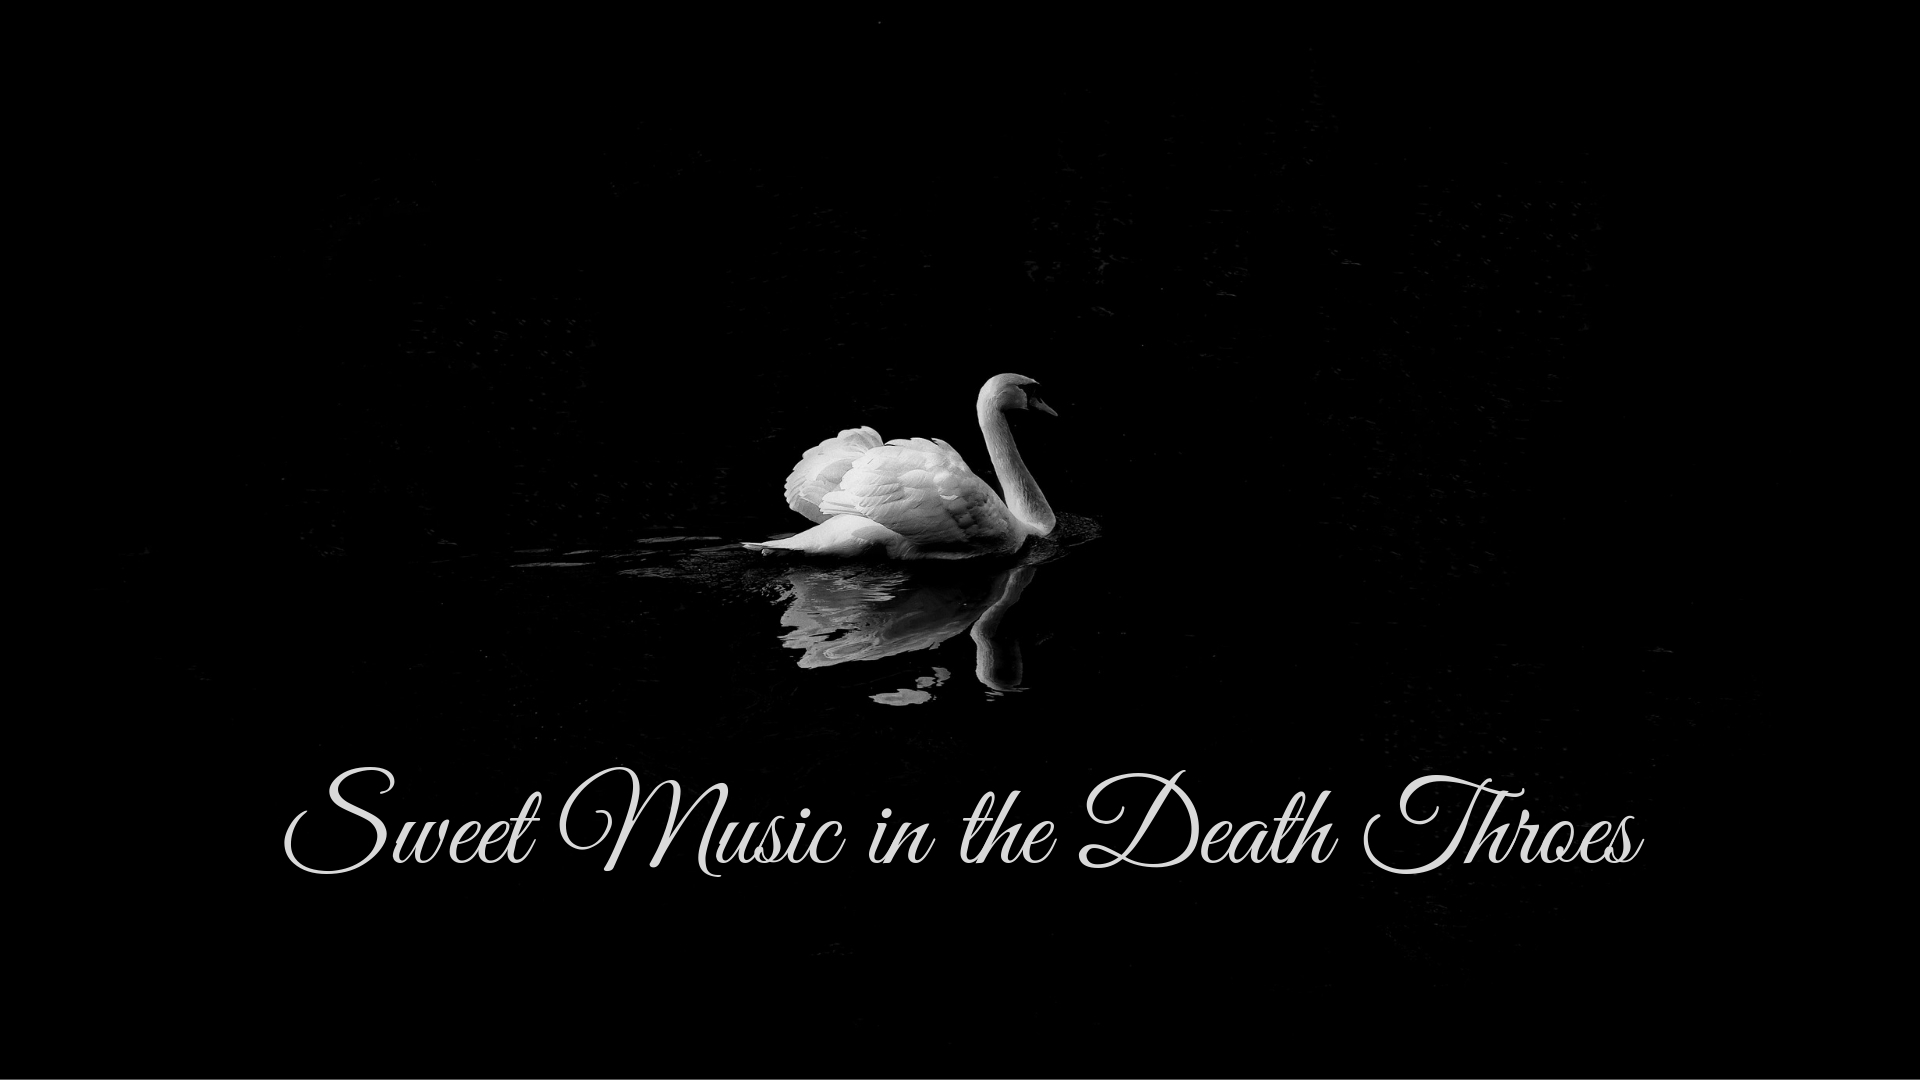 banner-sweet-music-in-the-death-throes-01.jpg